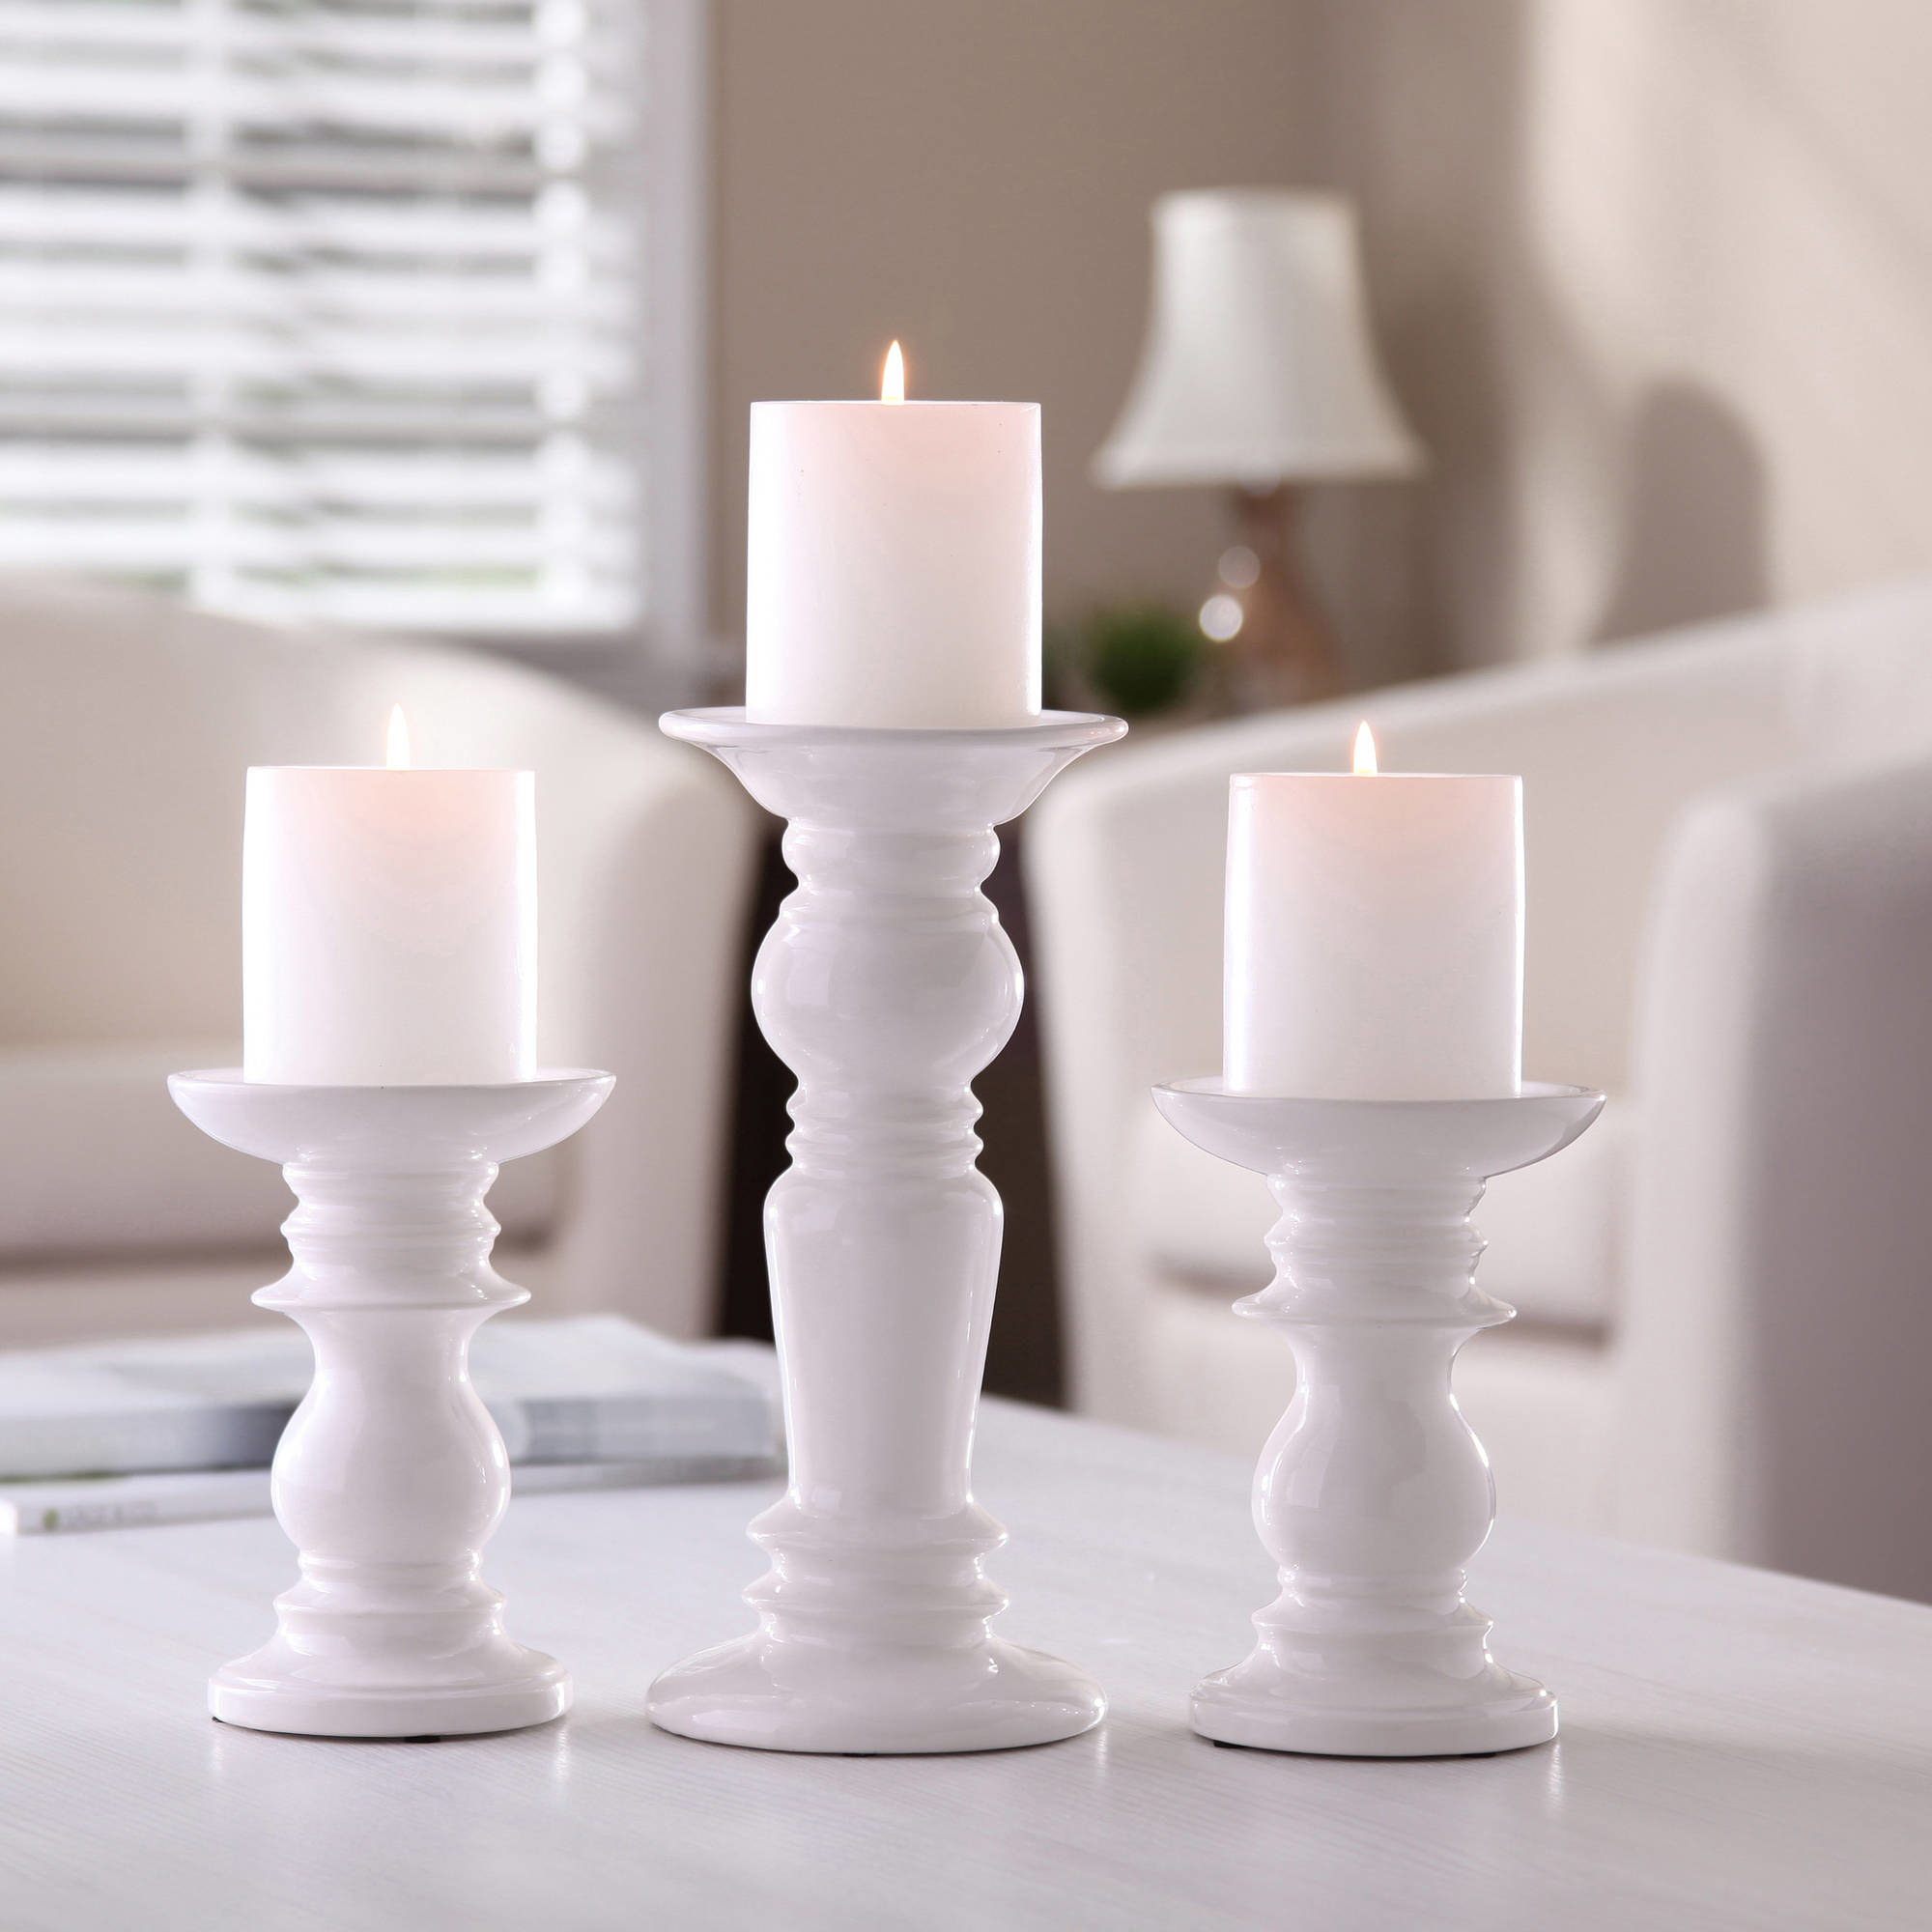 White candle pillars in a home